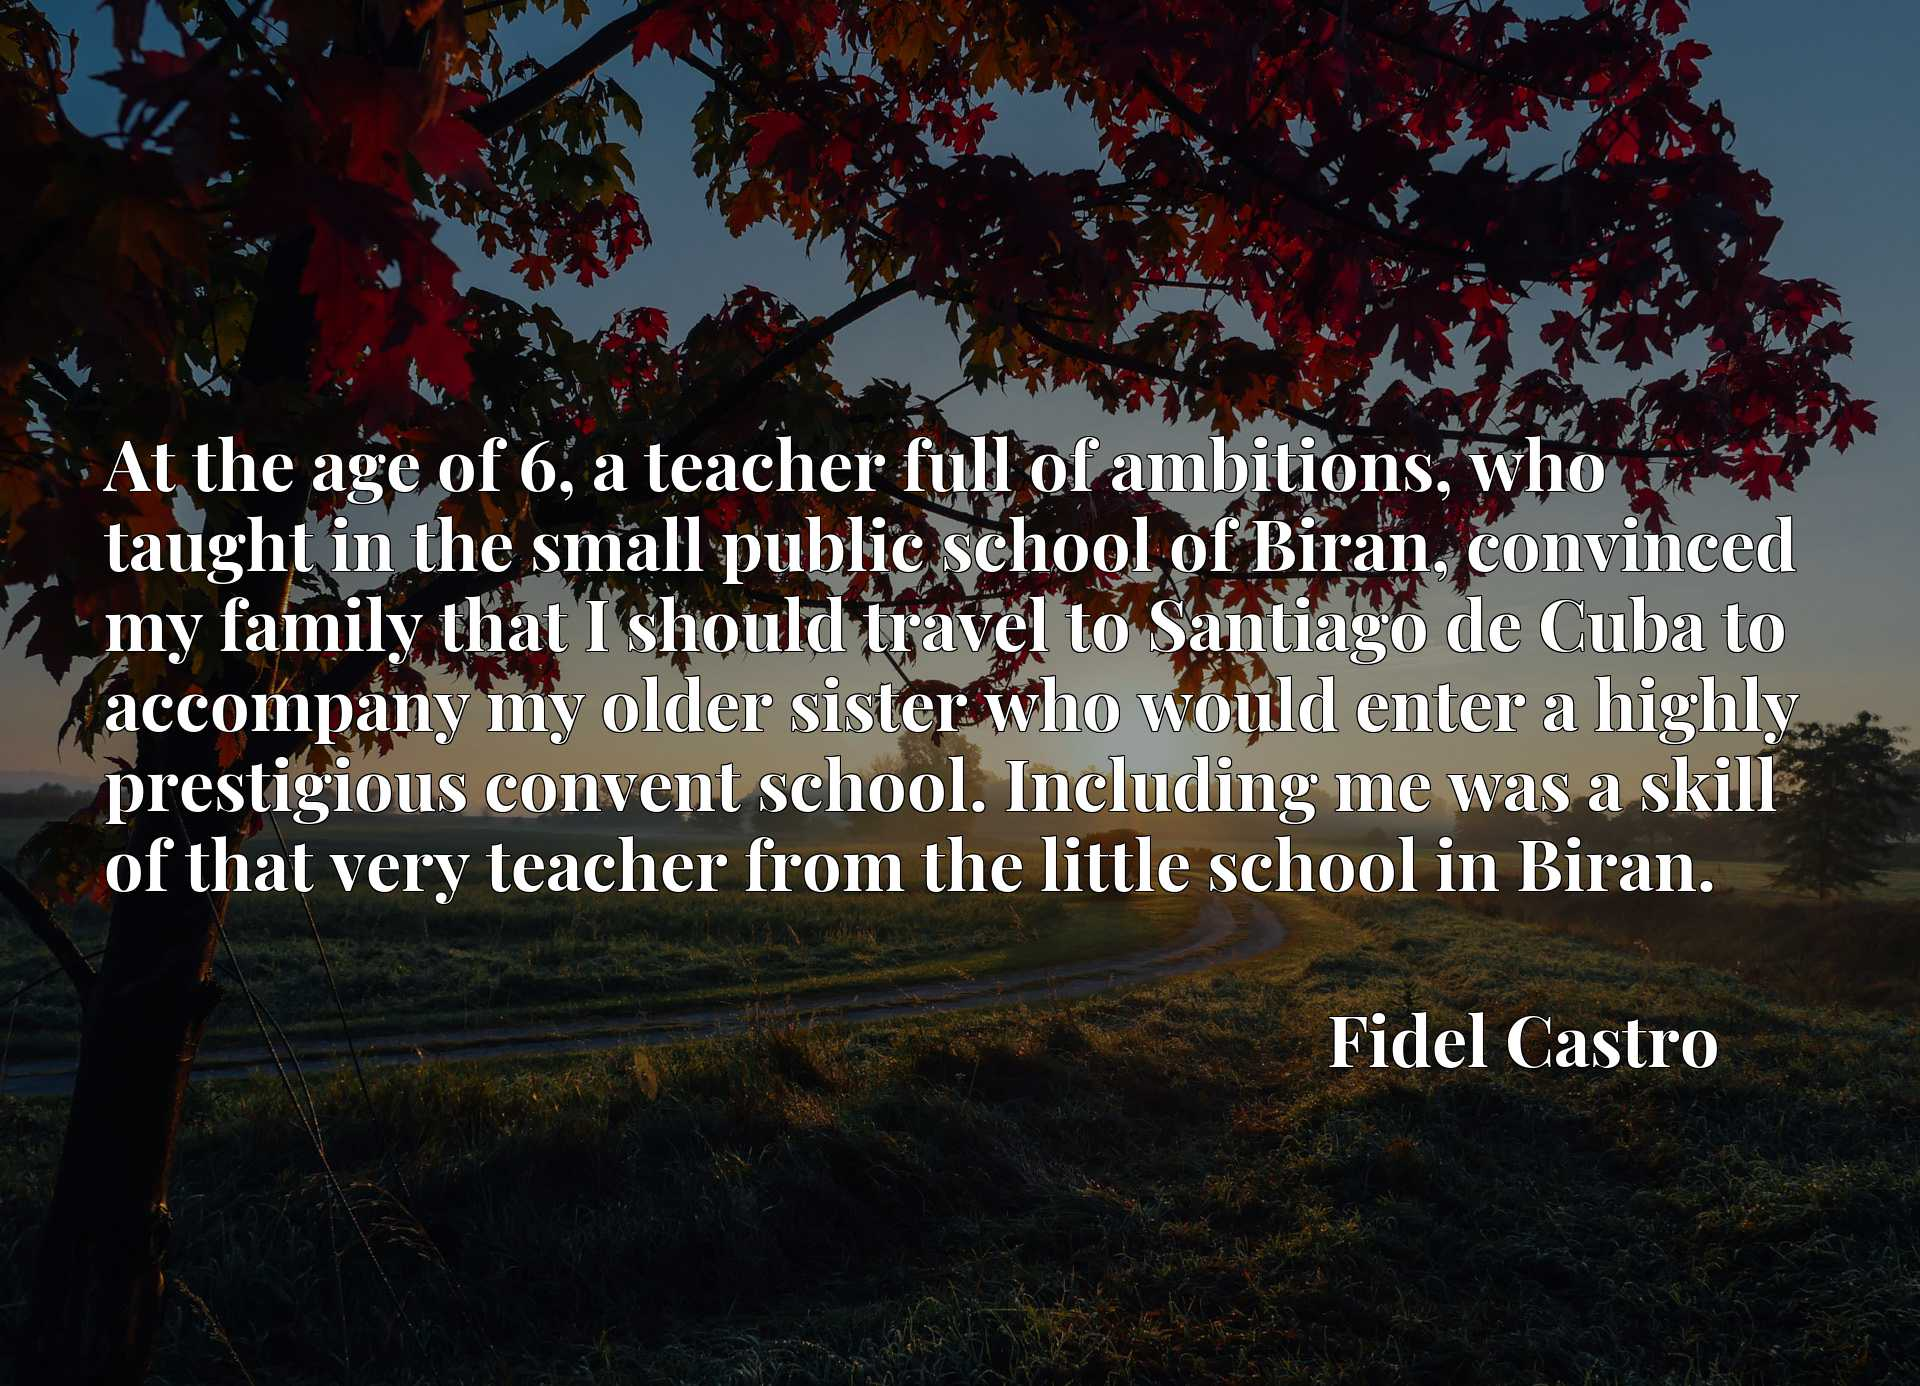 At the age of 6, a teacher full of ambitions, who taught in the small public school of Biran, convinced my family that I should travel to Santiago de Cuba to accompany my older sister who would enter a highly prestigious convent school. Including me was a skill of that very teacher from the little school in Biran.